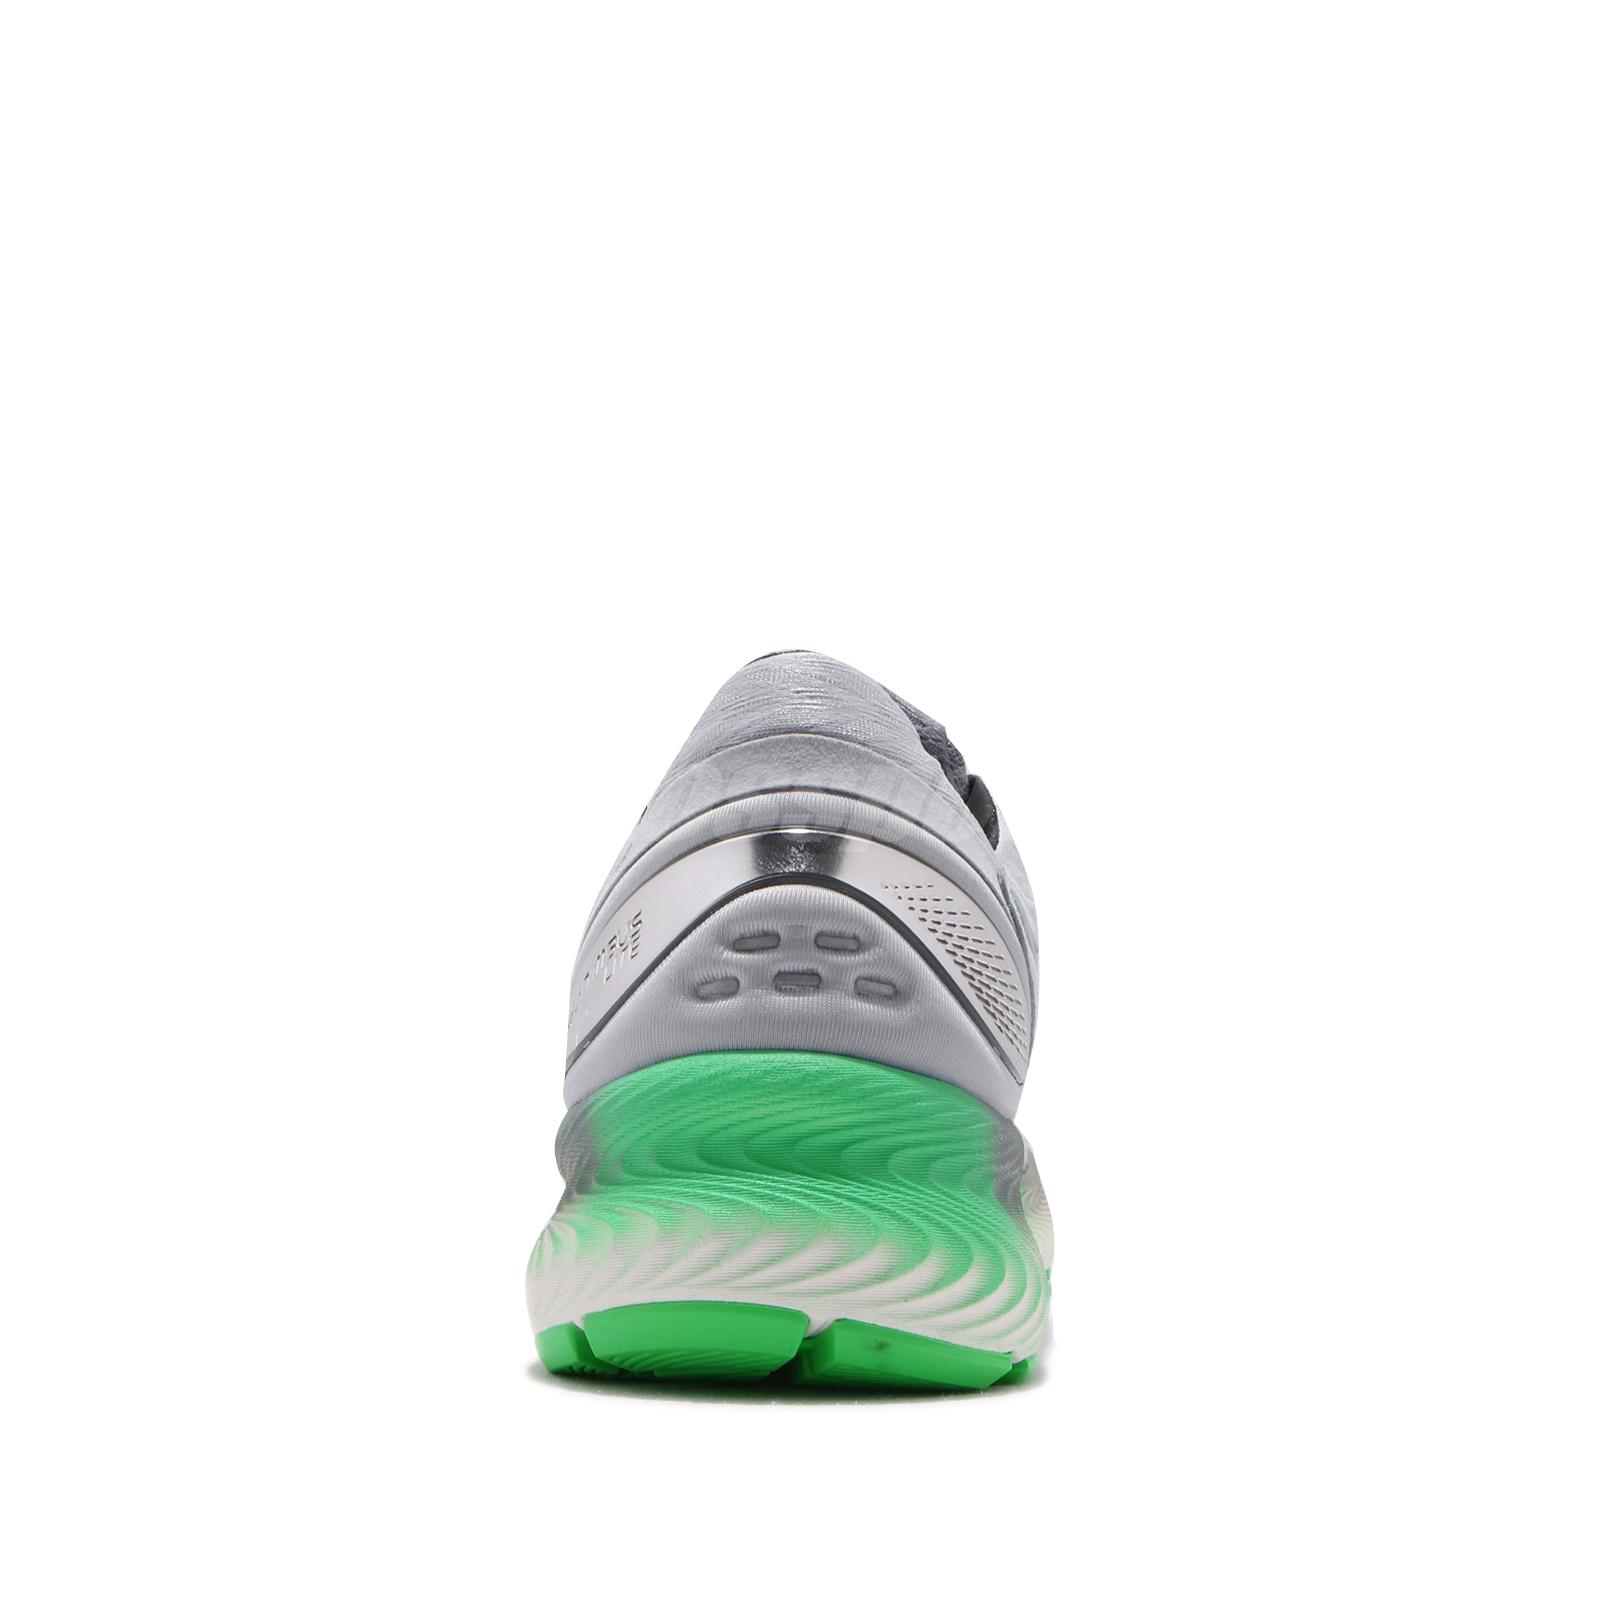 Asics Gel Nimbus 22 Running Shoes Mens Gents Road Laces Fastened Ventilated